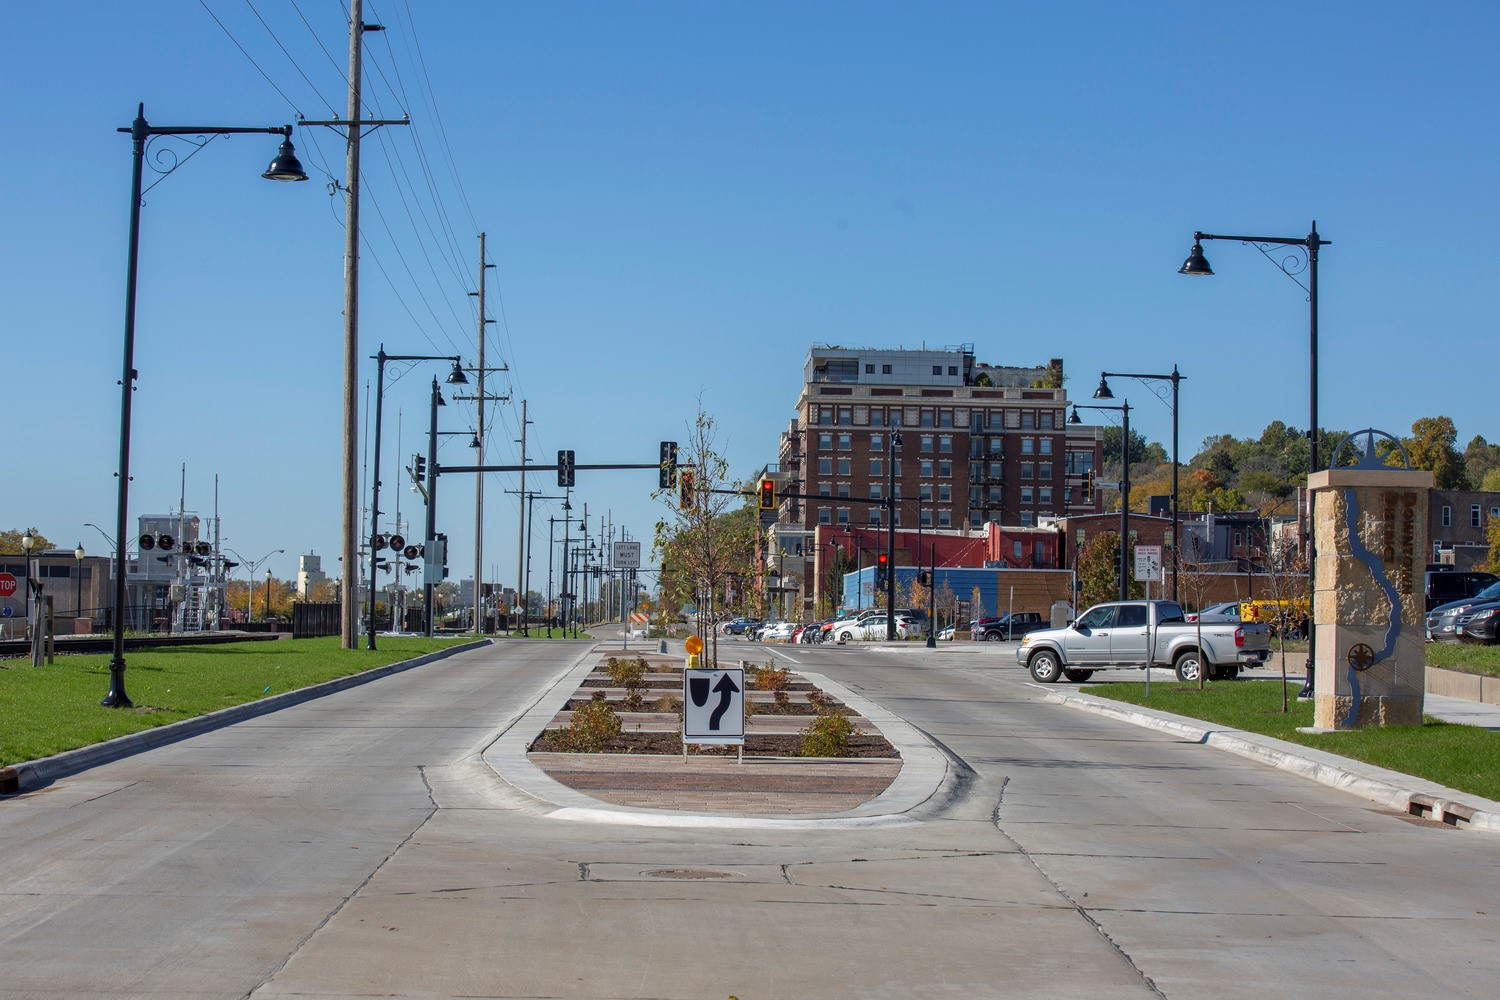 City of Muscatine Recognized for Urban Design Efforts